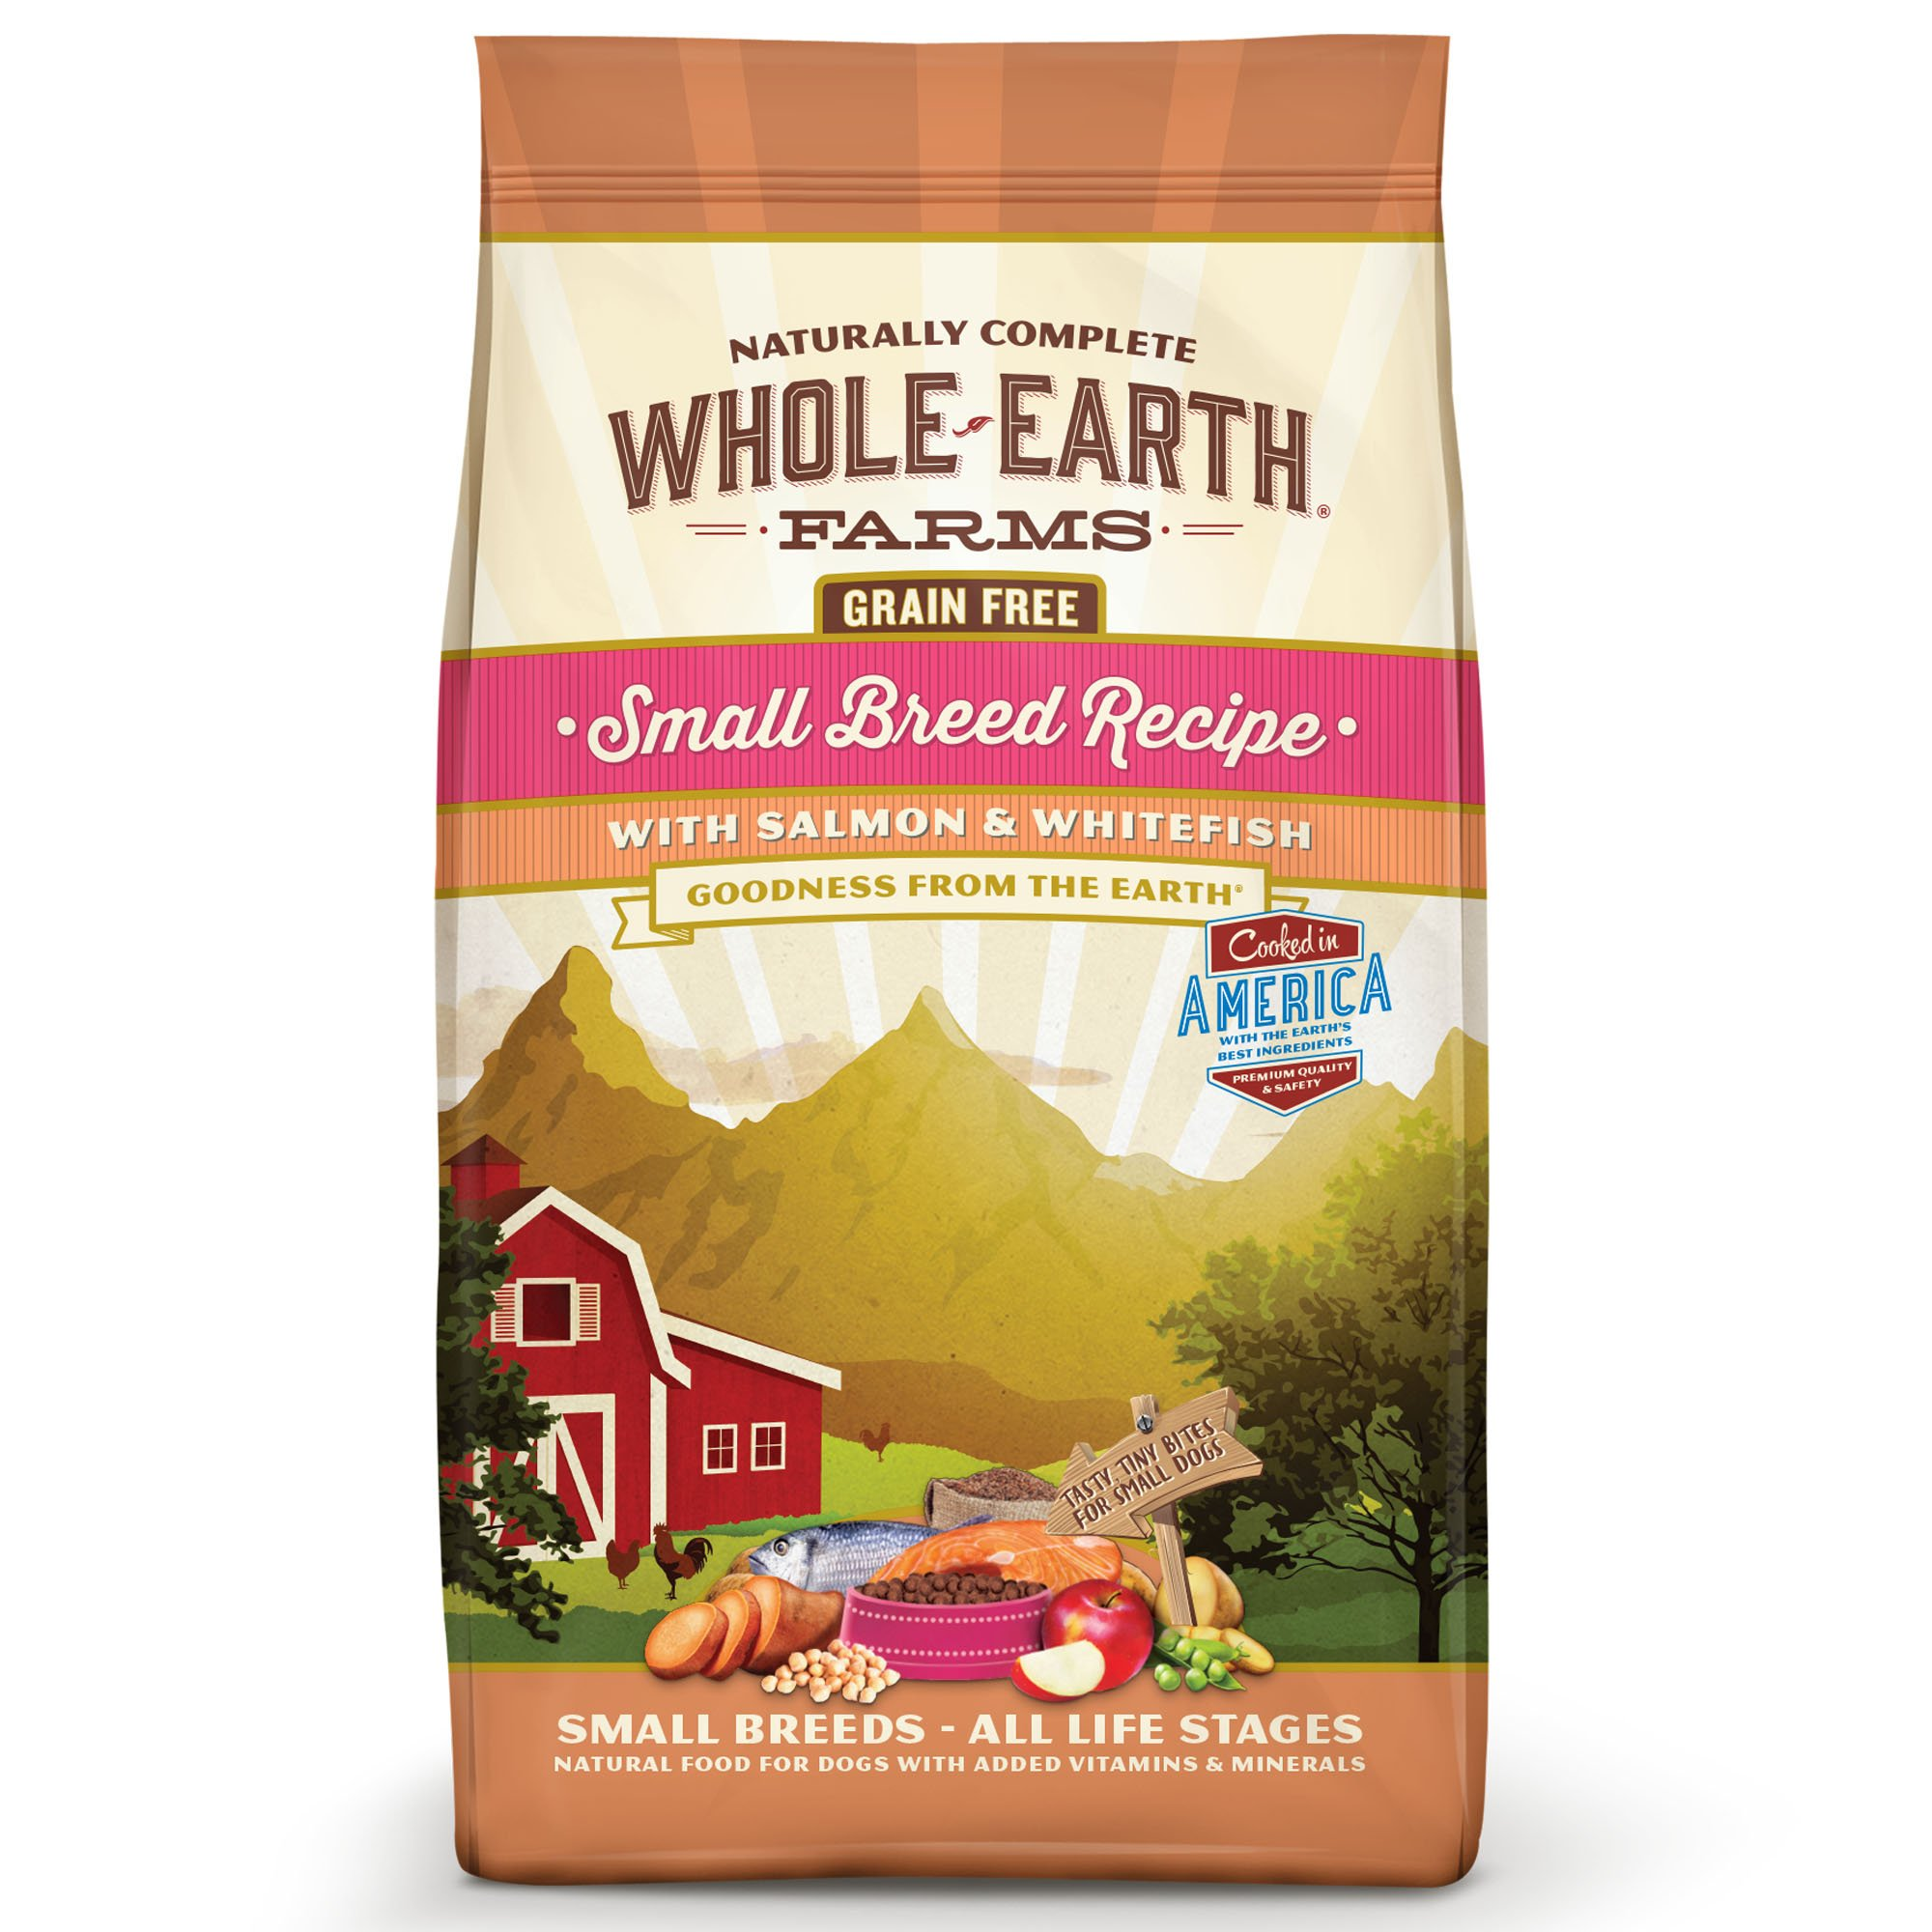 Whole Earth Farms Grain Free Small Breed Recipe with Salmon & Whitefish Dry Dog Food, 4 lbs.